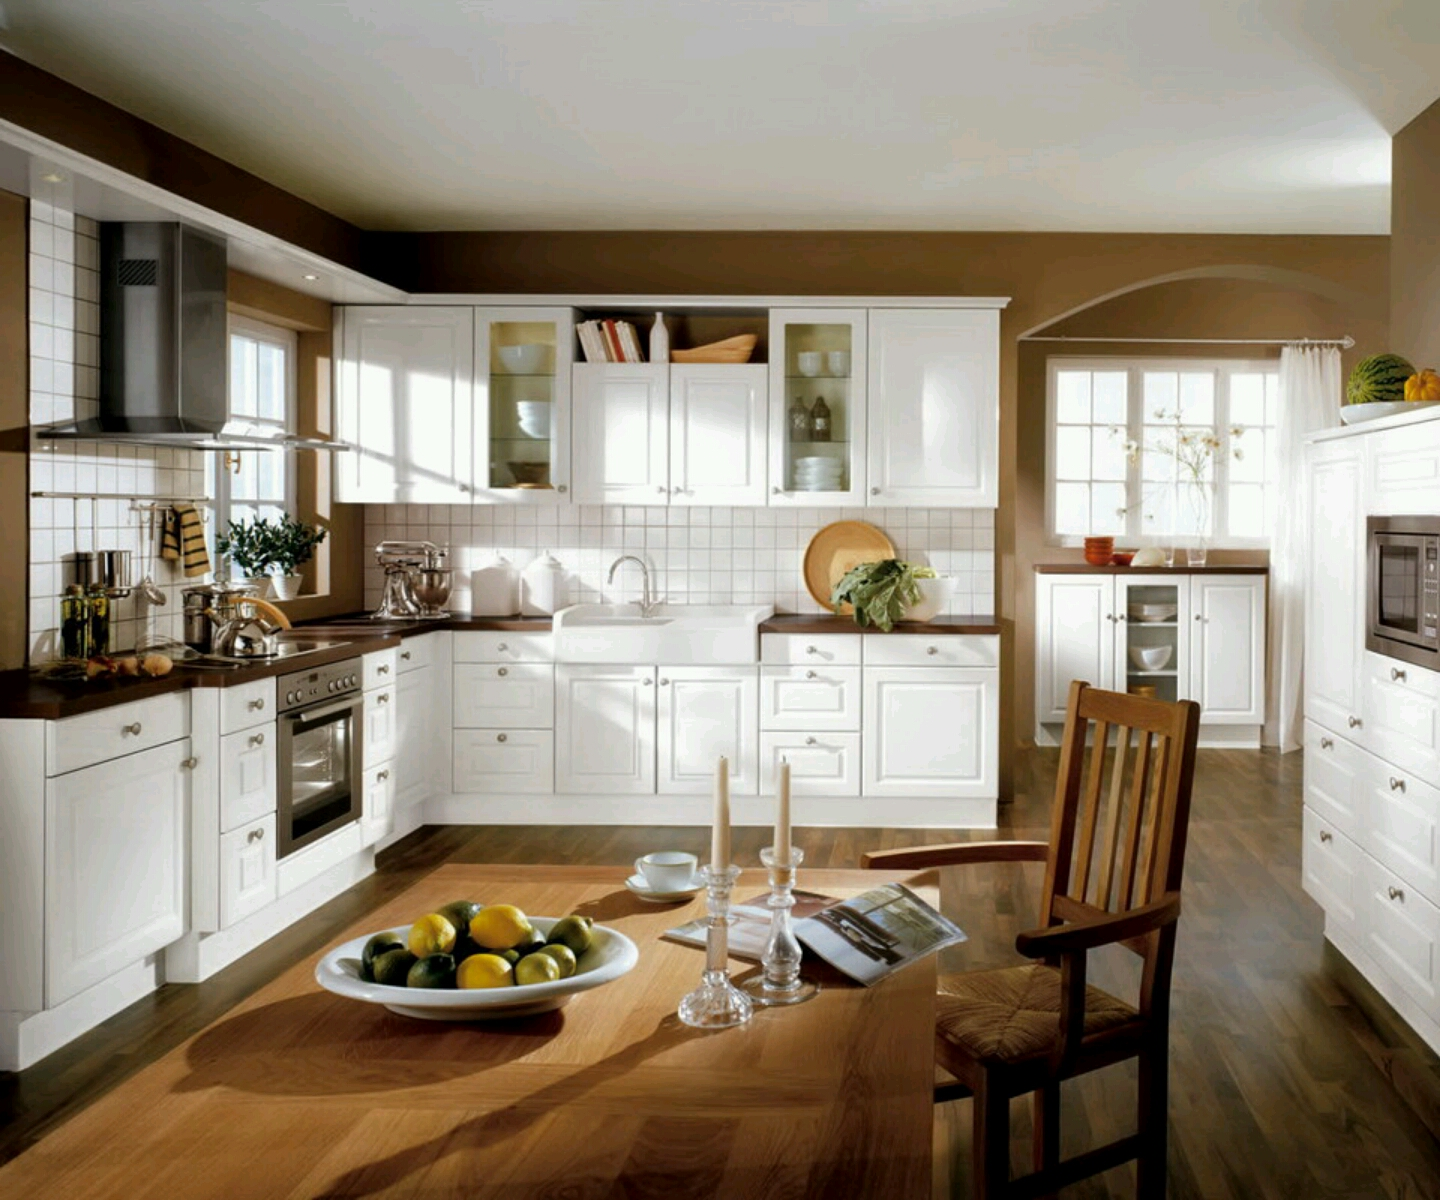 20 modern kitchen design ideas for 2012 pictures long